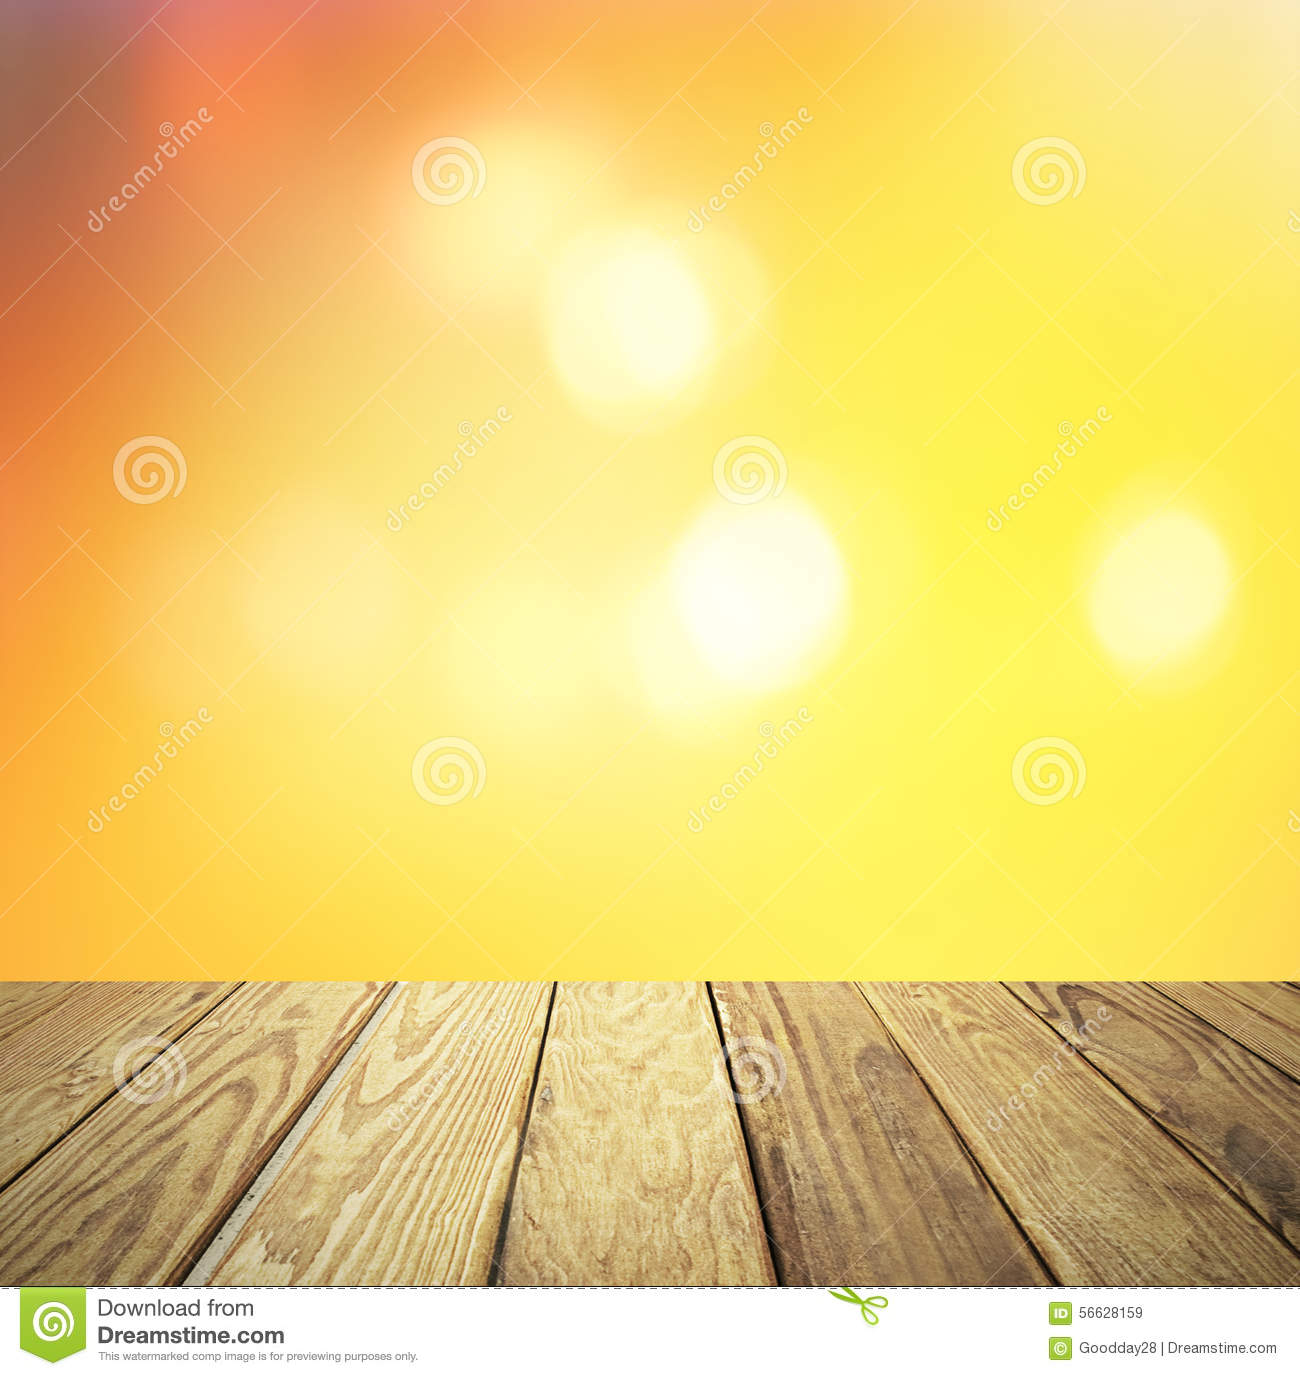 Wood Table Top On Blurred Beach Background Vintage Tone: Sunset Blurred Background Royalty-Free Stock Photo